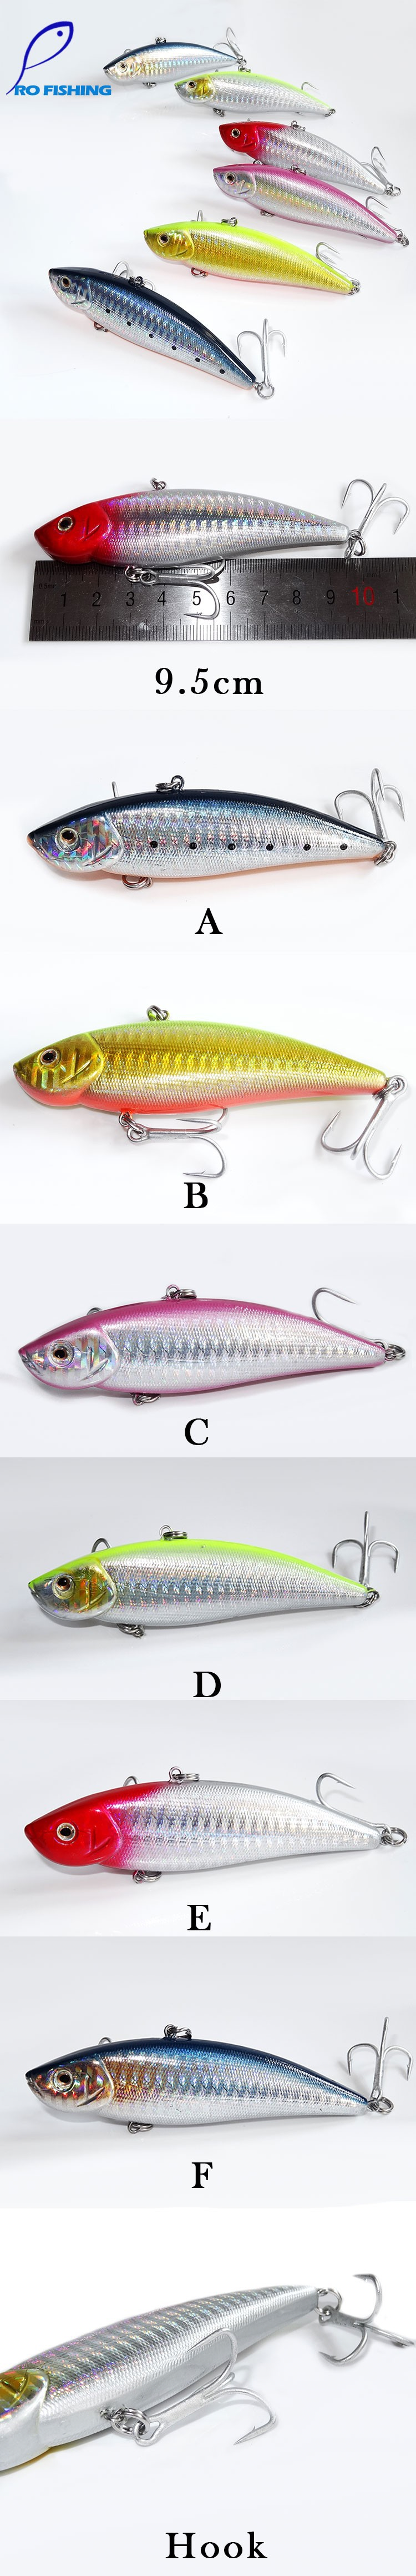 Pesca Artificial Bait 38g 9.5cm Fishing VIB Boat Fishing Sinking Sea Trout Trolling Plke Sinking Lure for Fly Fishing lures